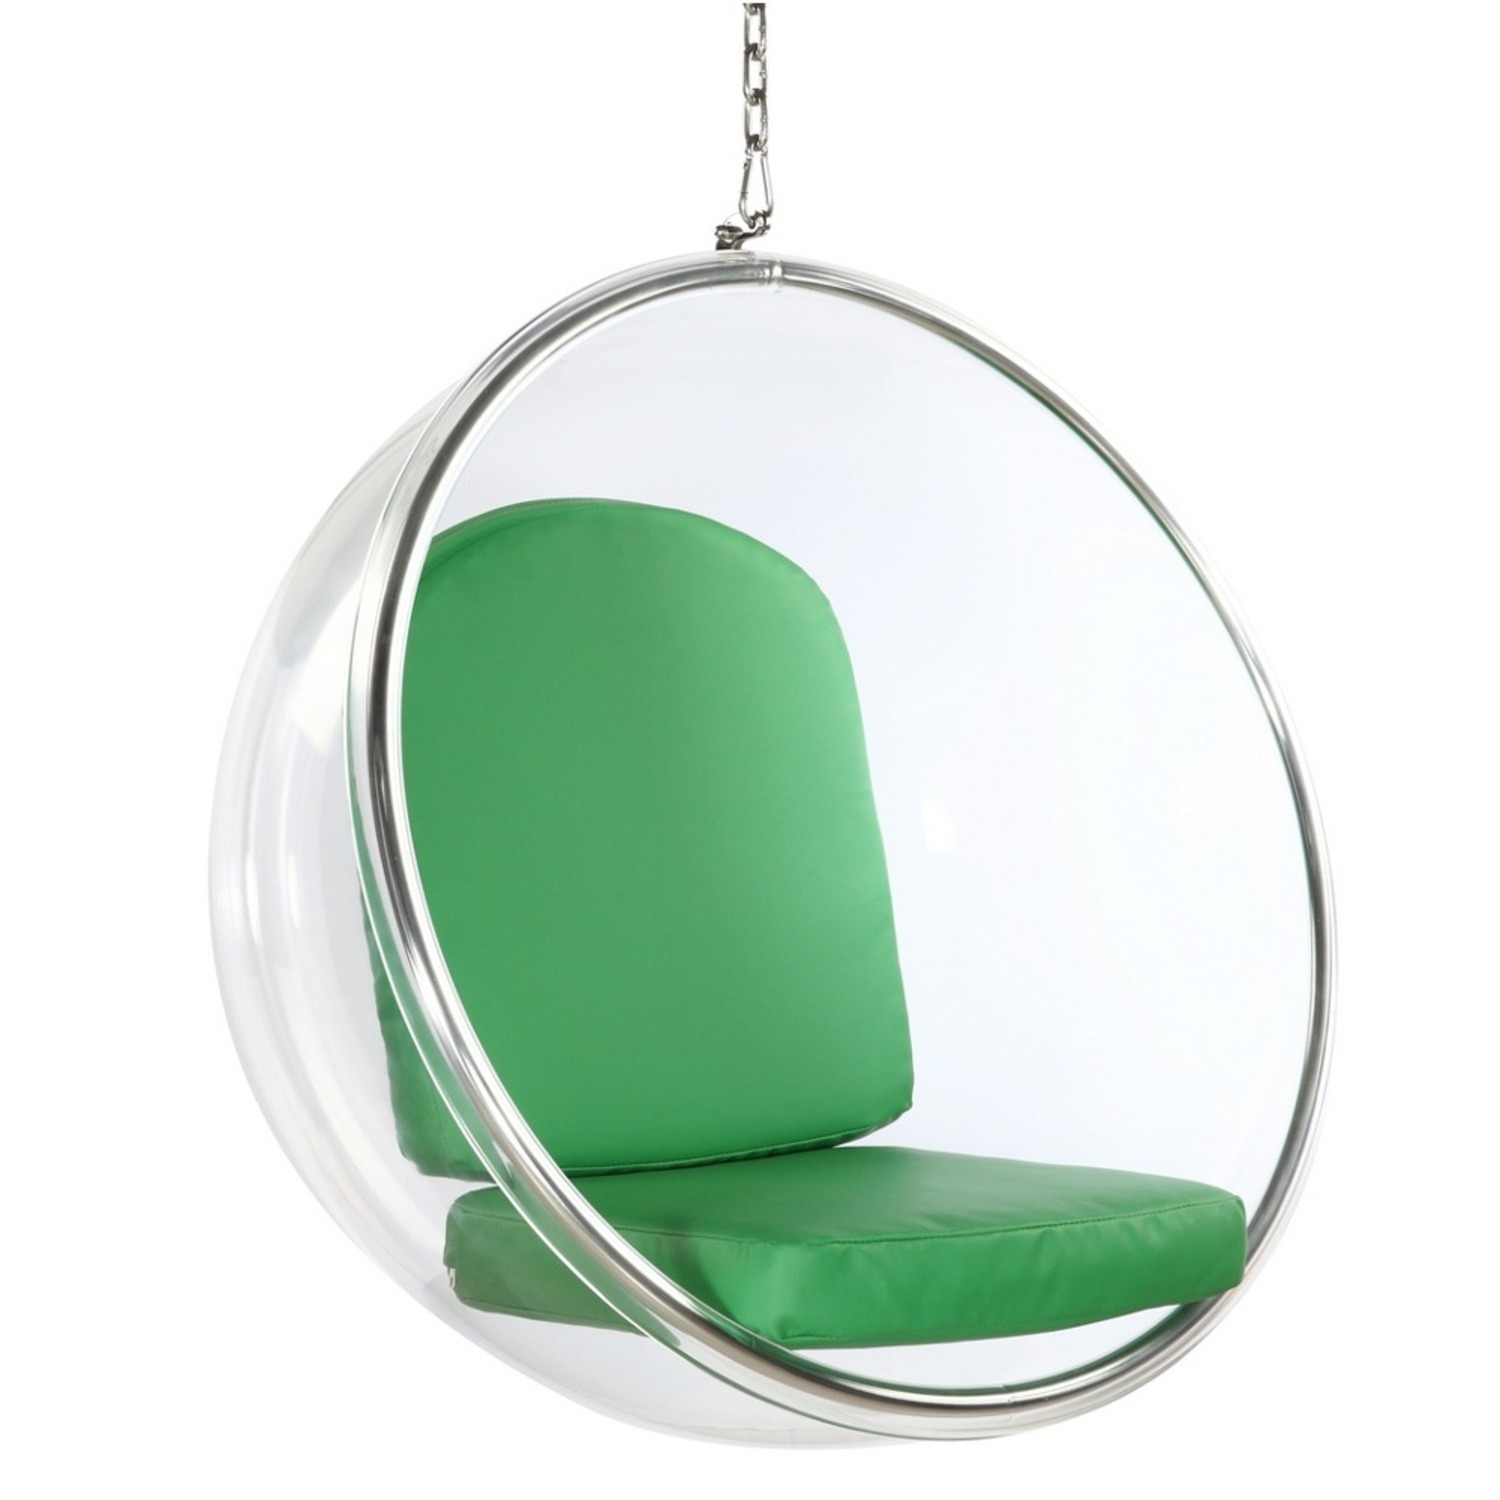 Hanging Chair In Clear Acrylic & Green PU Leather - image-0